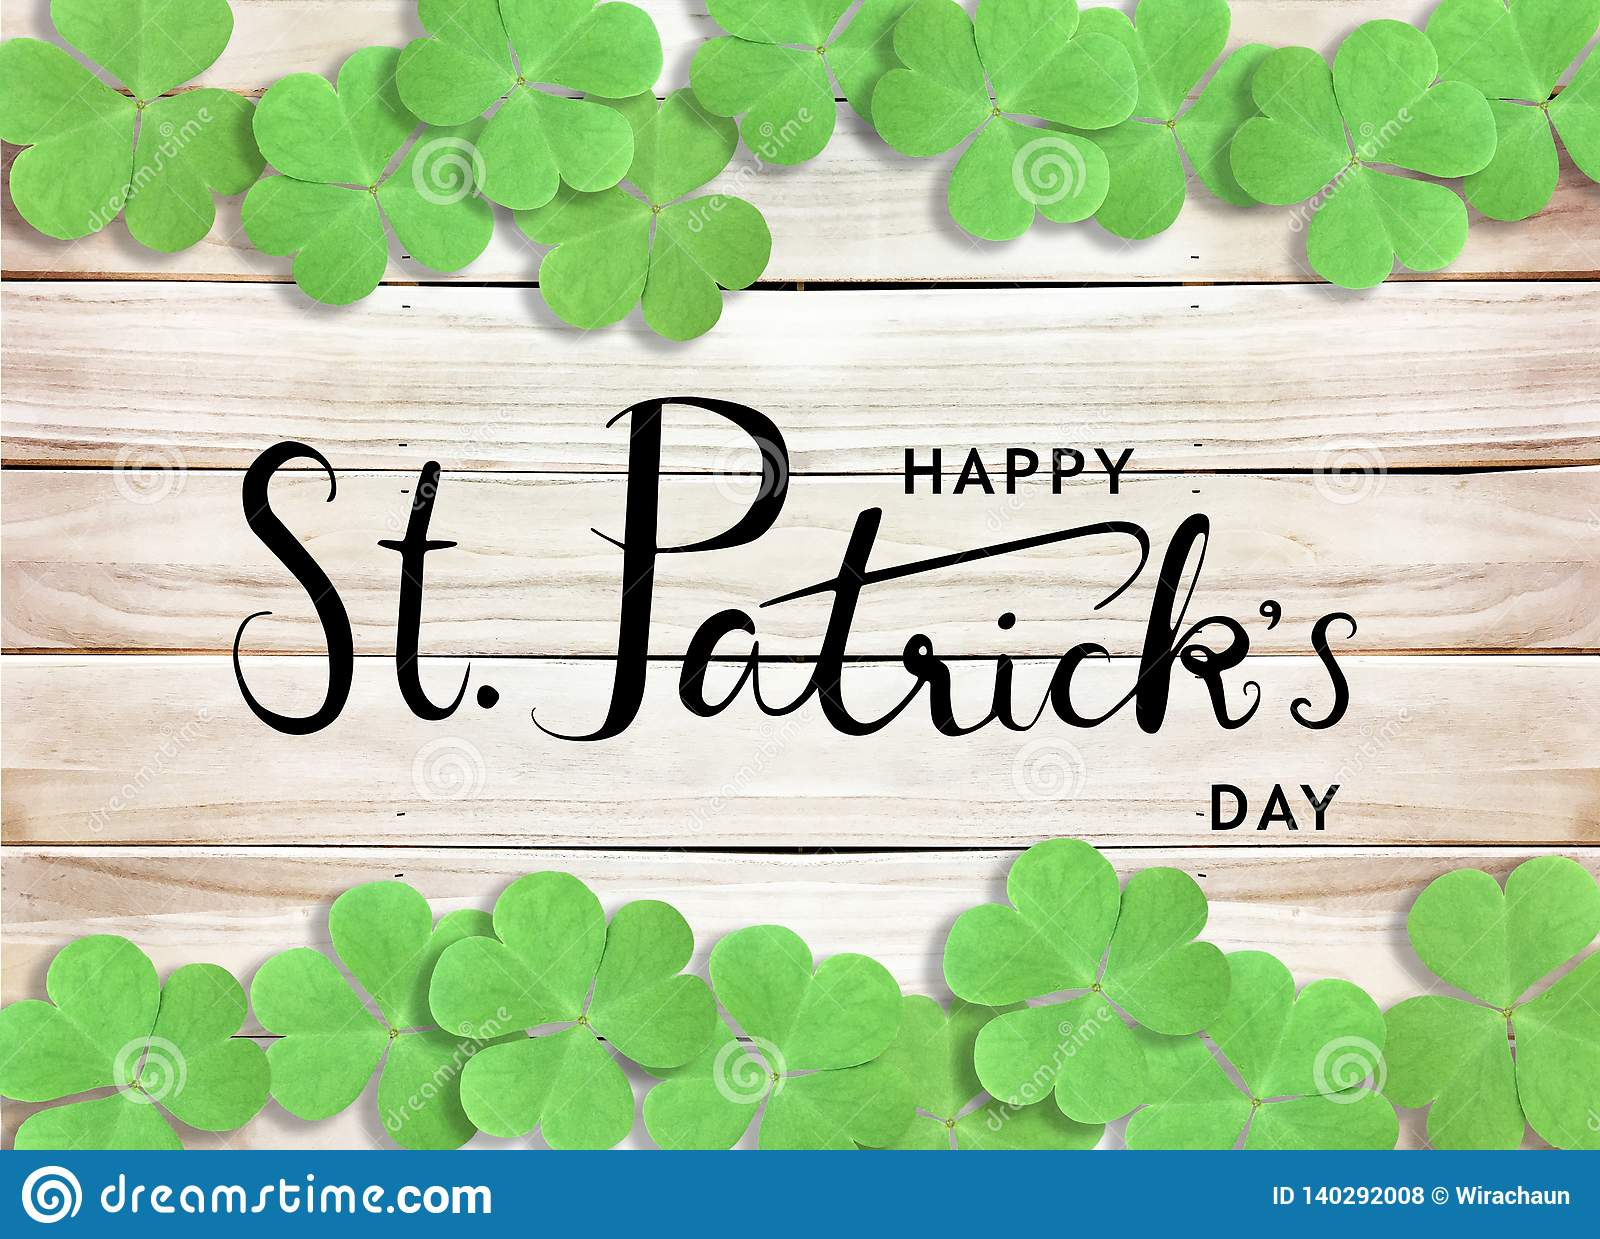 Happy St. Patrick`s Day Black Text Typography Background with Green Shamrocks on Wooden Texture